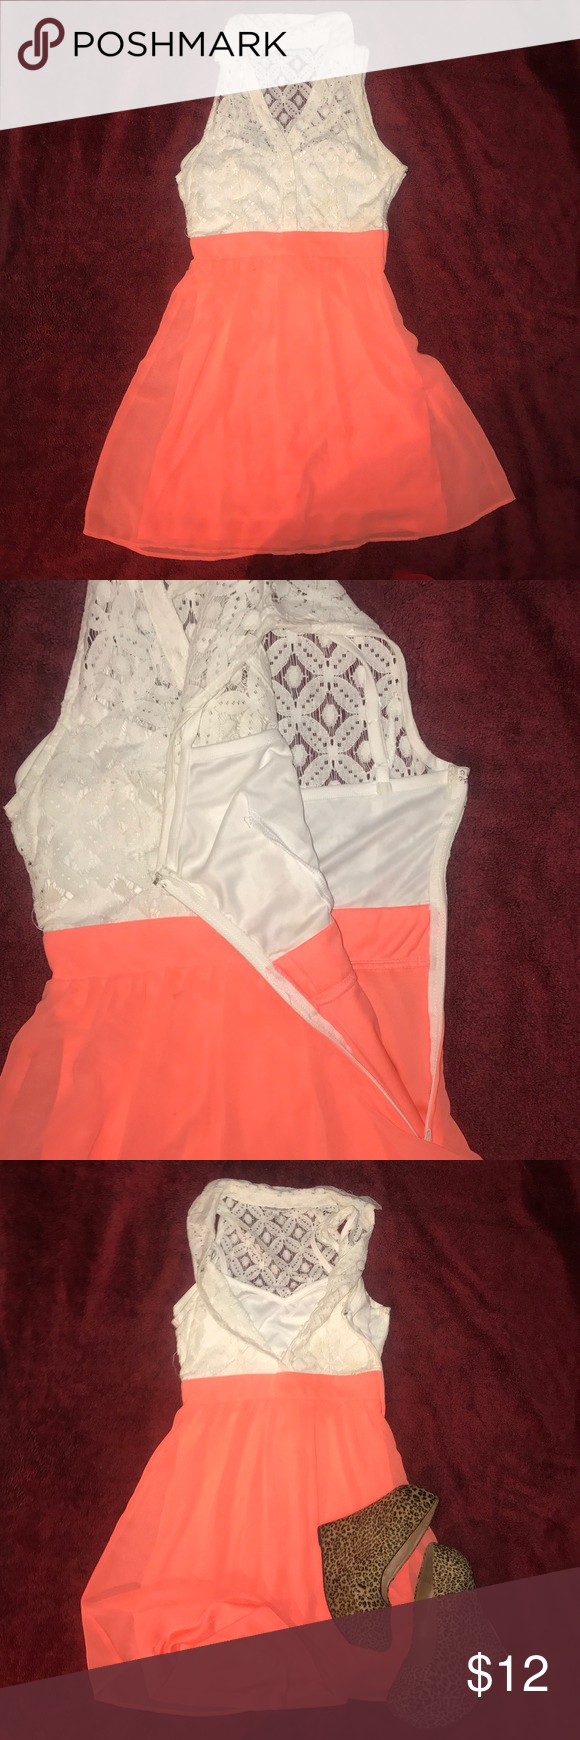 💕Cute Coral Lace Top Dress Super Cute Coral Dress attached Lace top with 3 button detail. Side hidden working zipper with clasp at end. Love this color! Charlotte Russe Dresses Midi